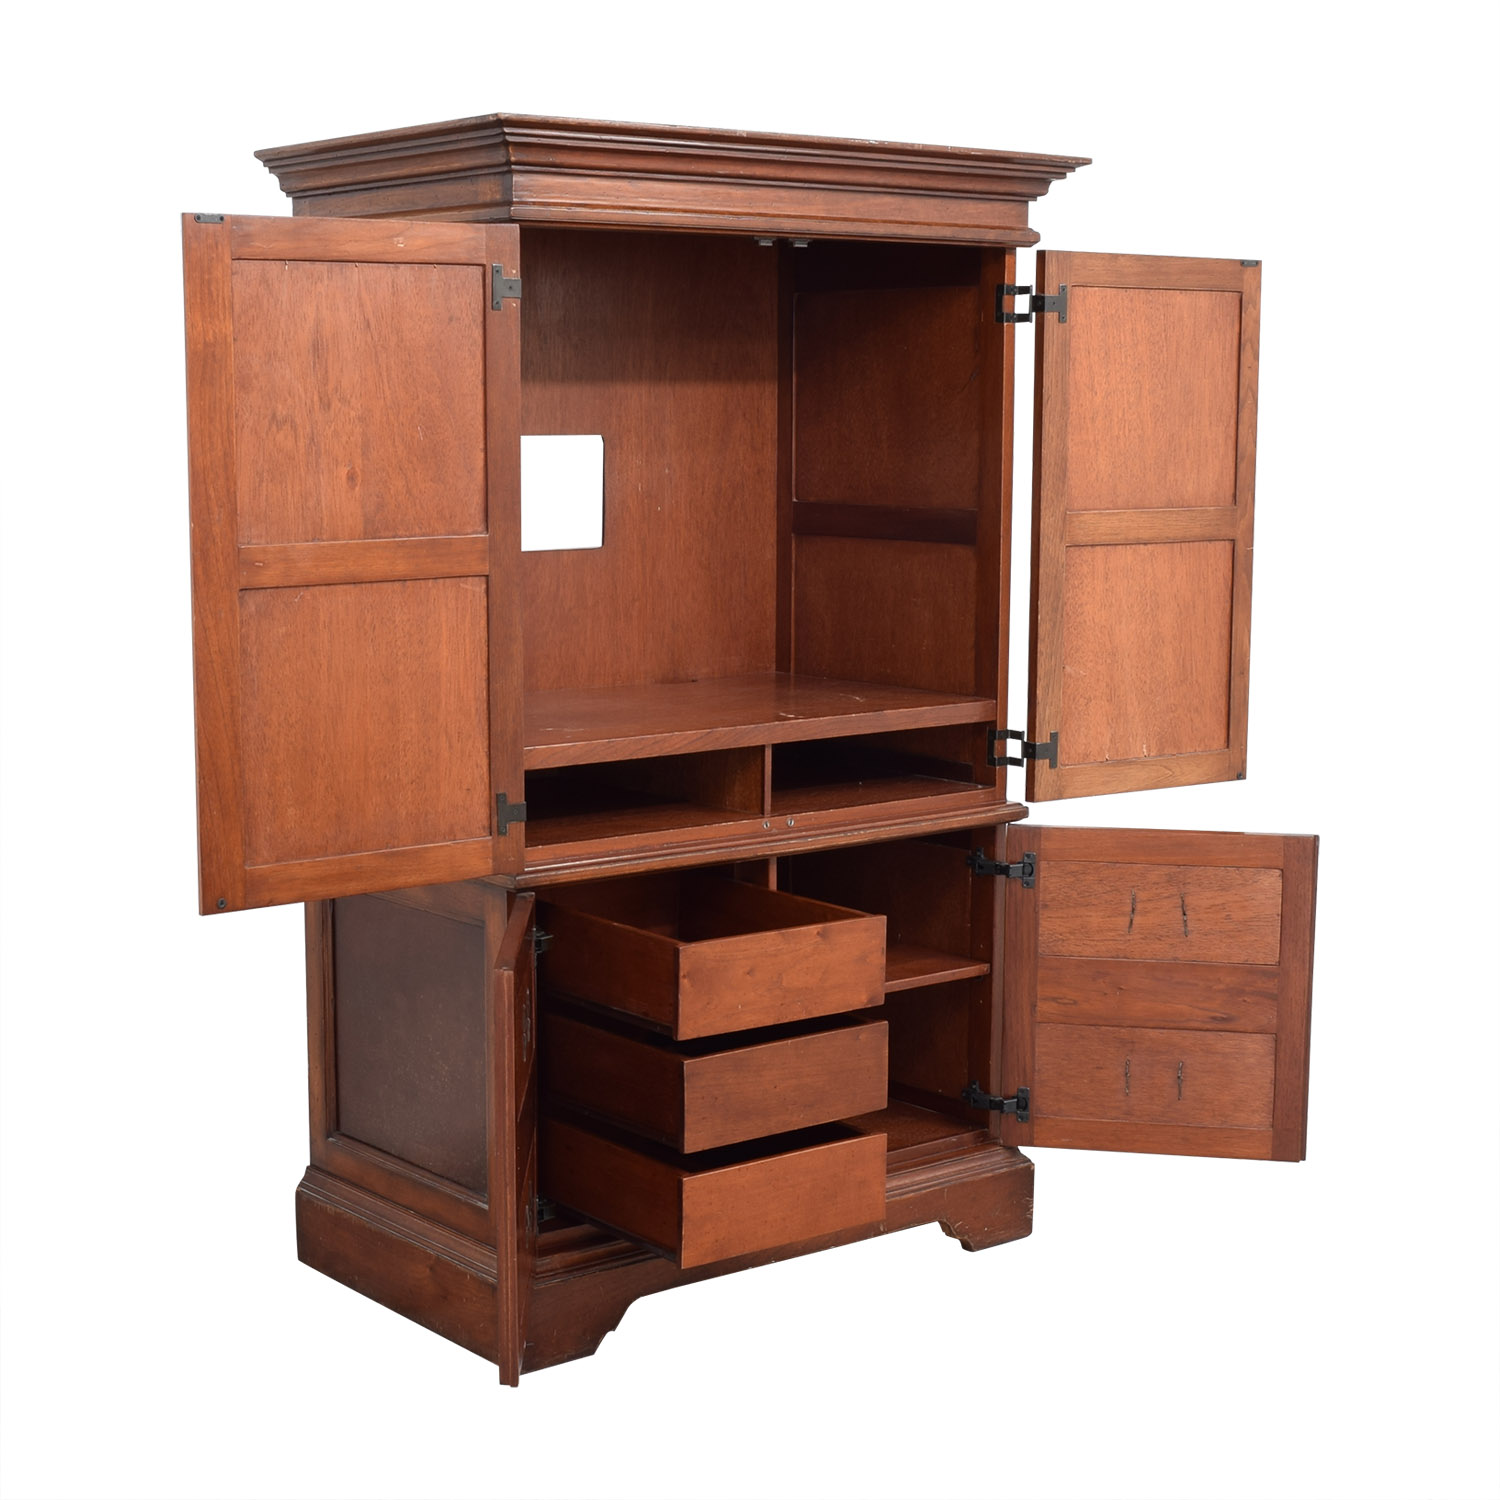 Domain Domain Armoire with Drawers brown